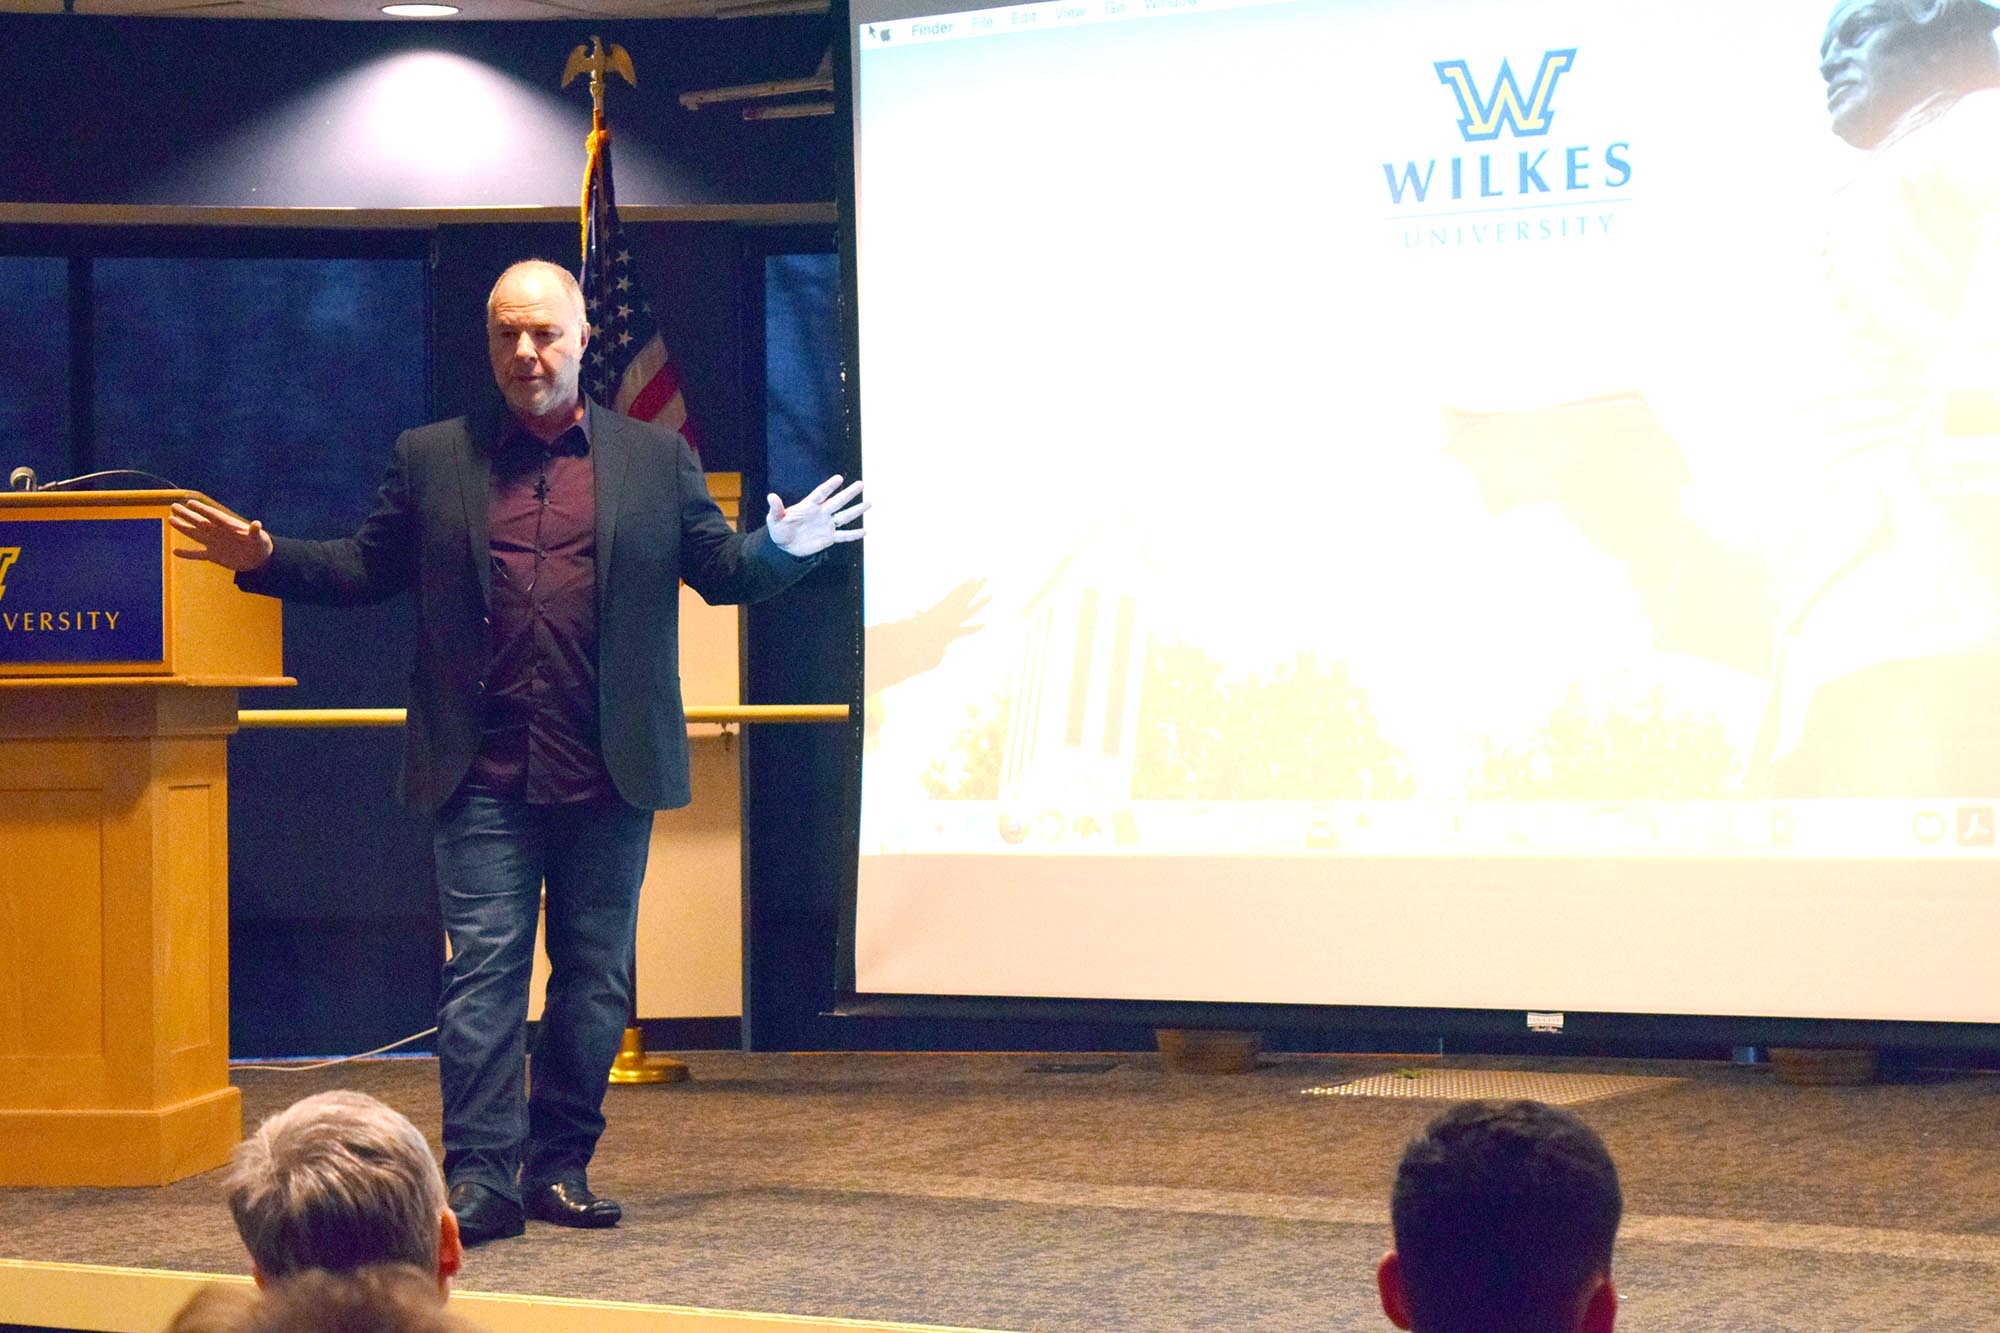 """Renowned educator and pioneering activist Dr. Jackson Katz dellivered his lecture entitled """"Men, Women, Sex and Violence"""" in the Henry Student Center Ballroom on March 27. Katz was the keynote speaker for """"It's On Us Week,"""" a week-long event dedicated to discussing sexual violence."""